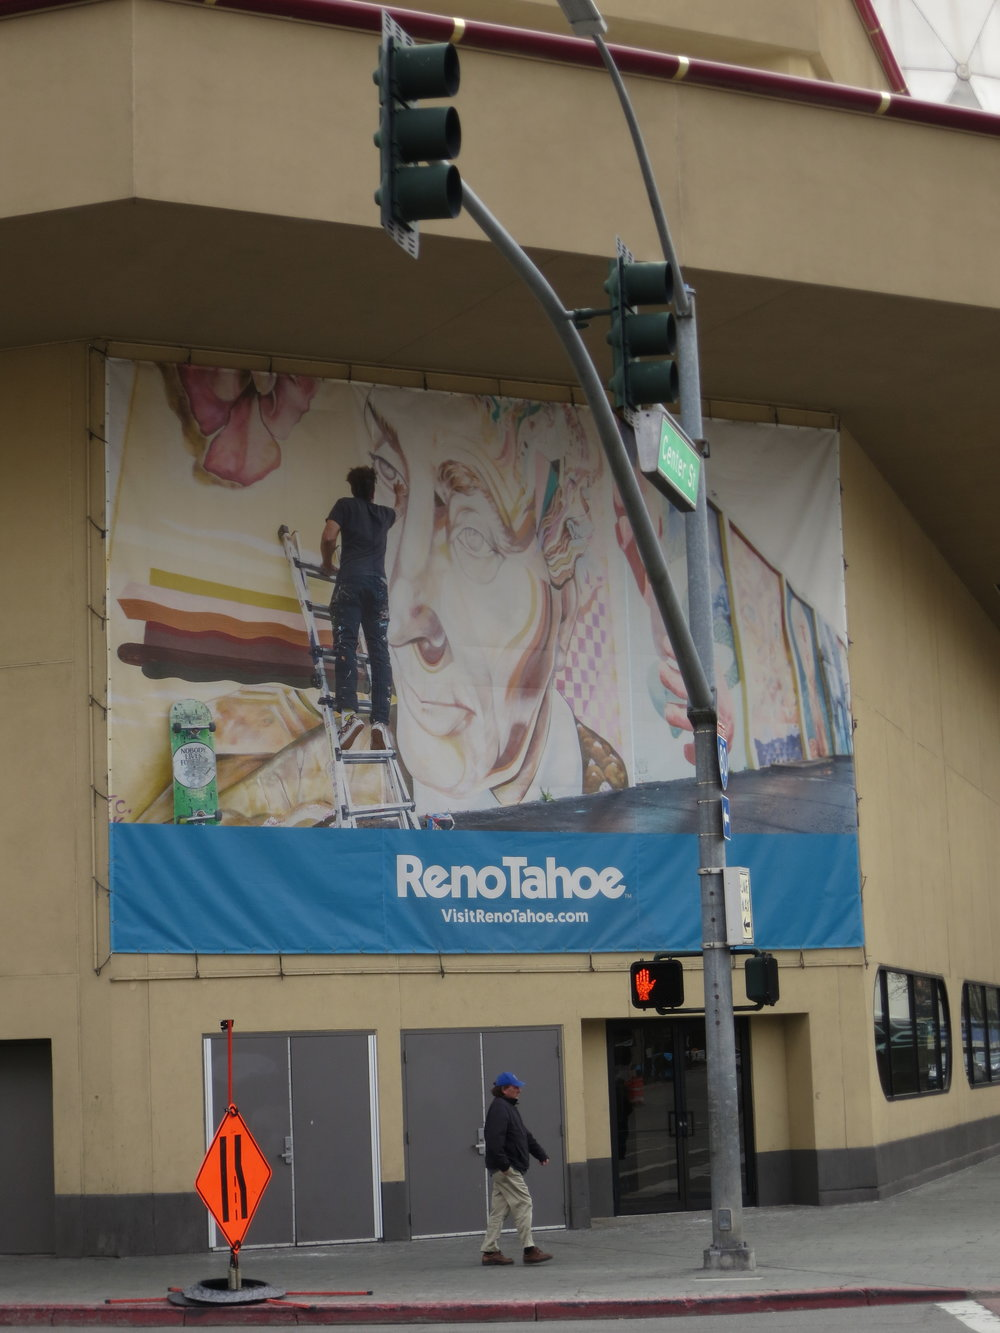 Murals are part of the advertising campaign for a new, artsier and cleaned up Reno.